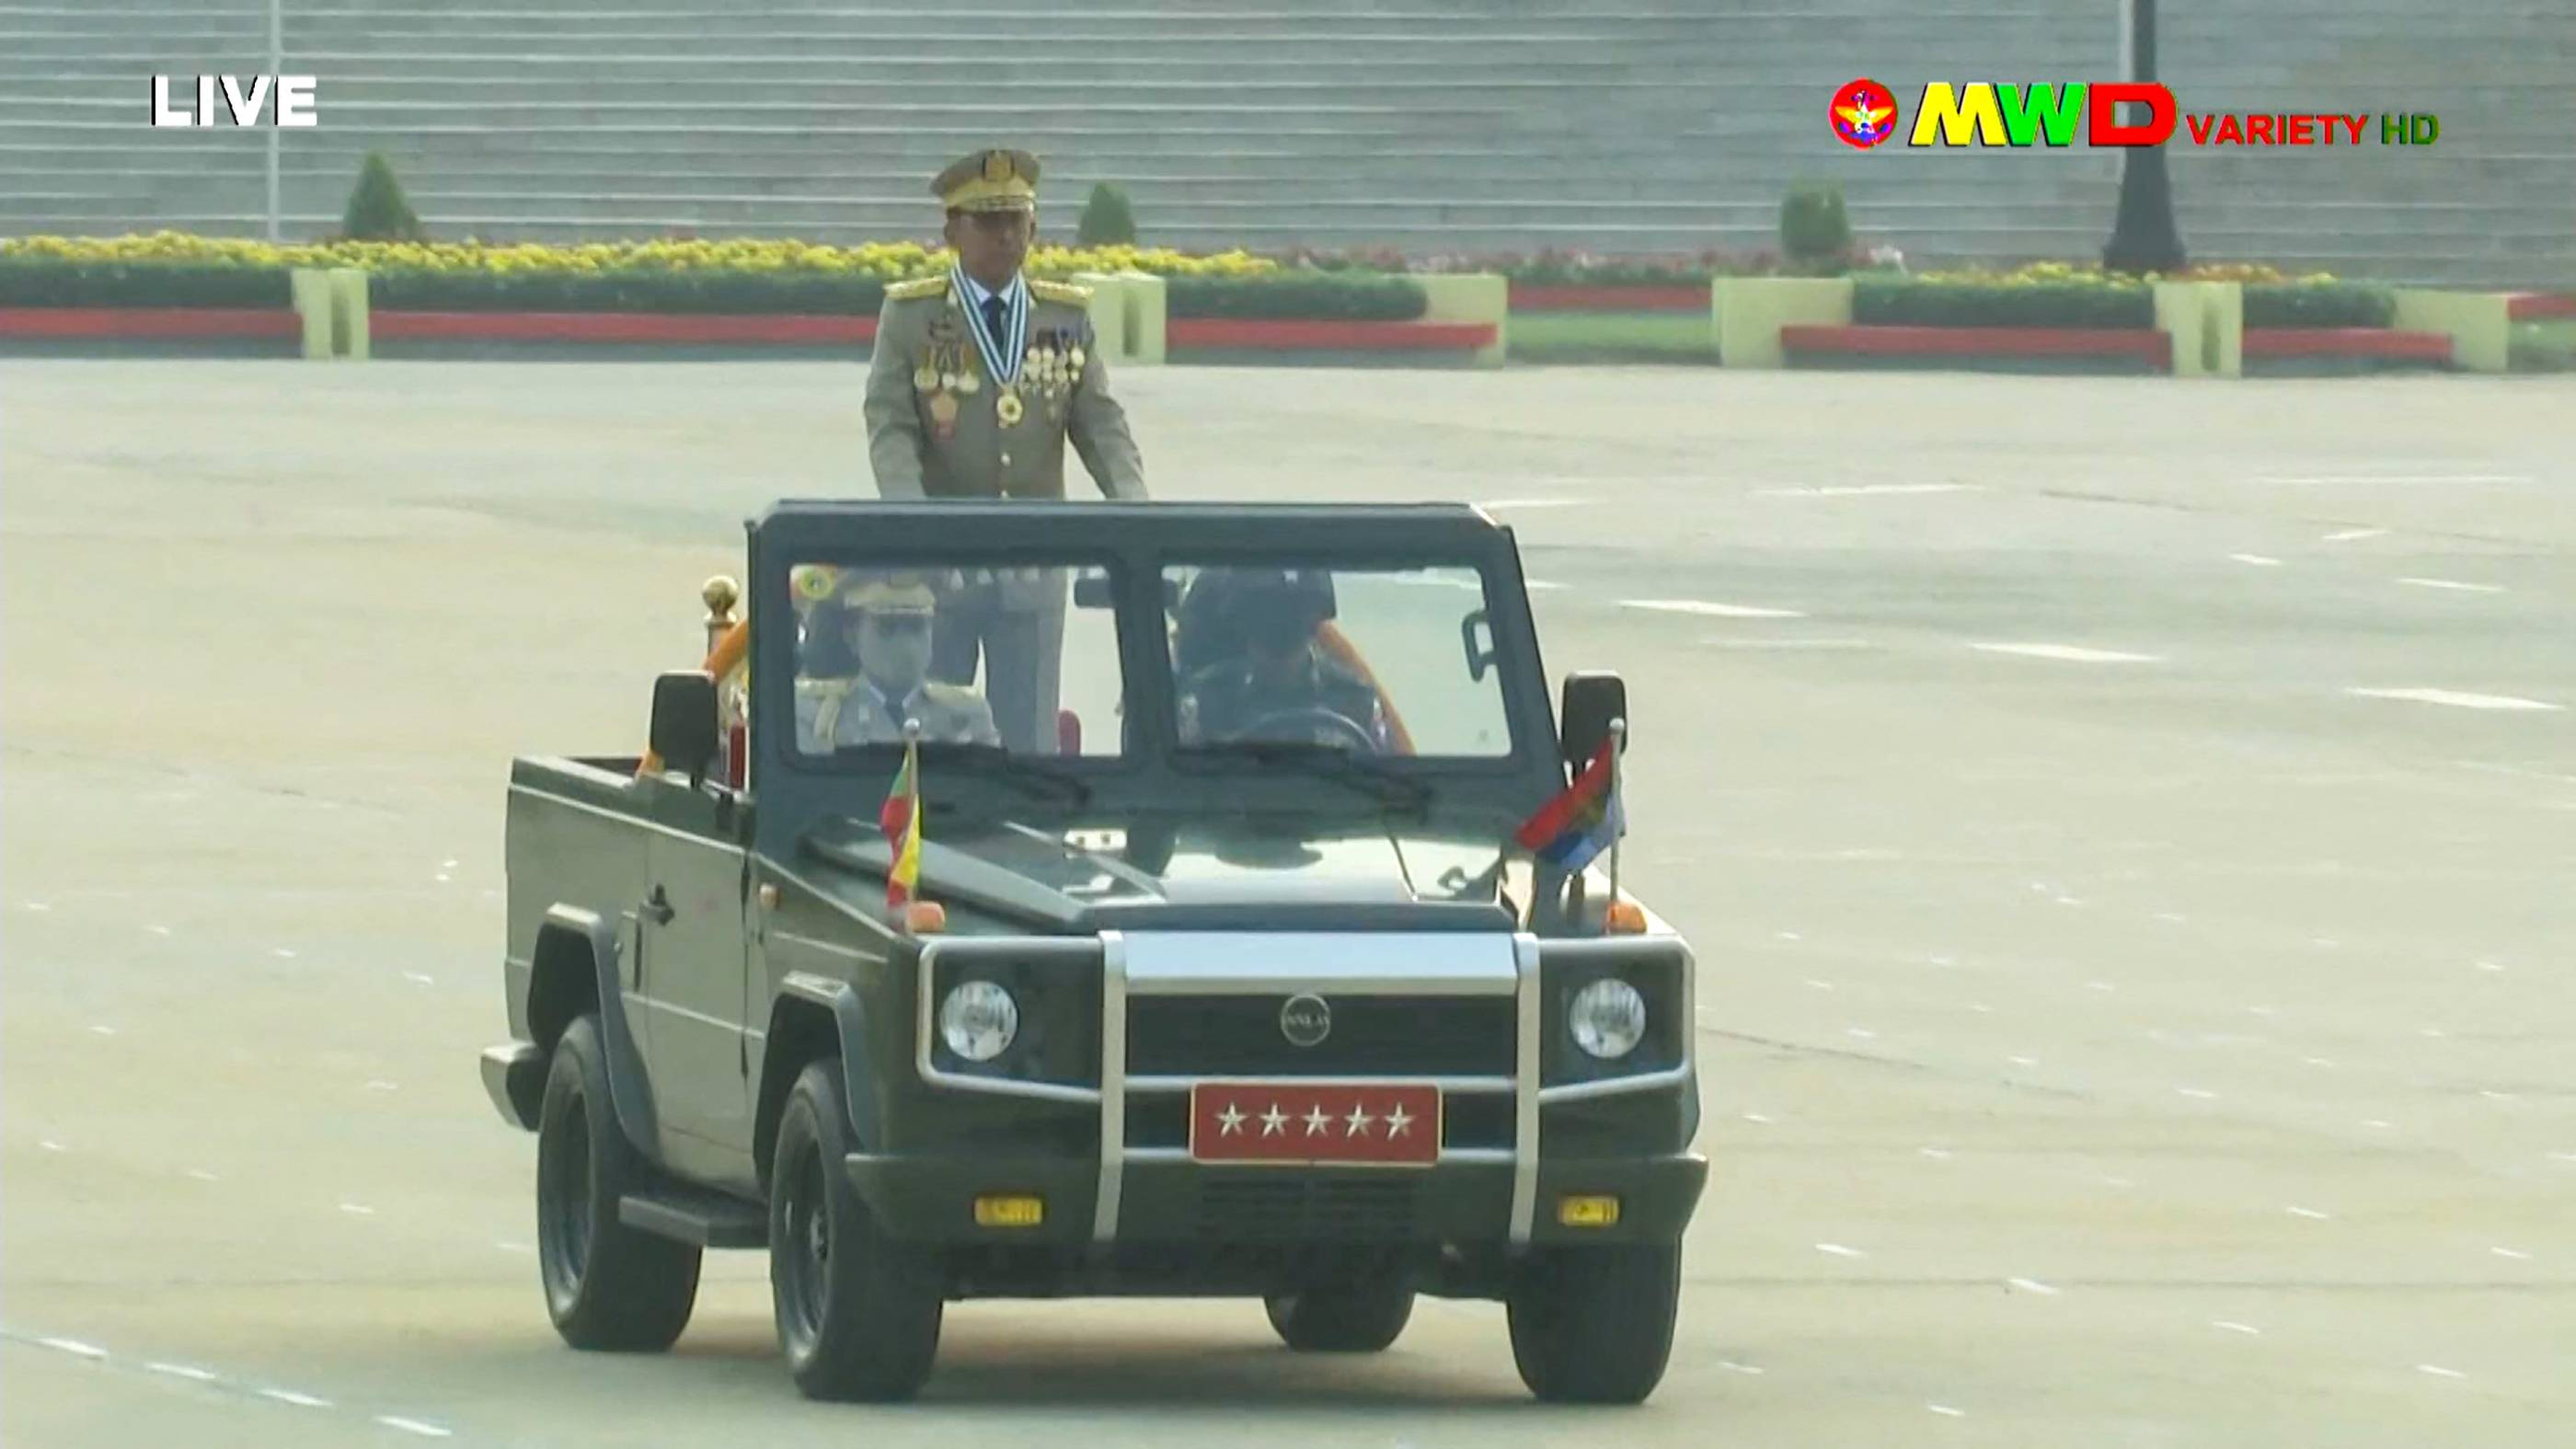 Myanmar armed forces chief Senior Gen. Min Aung Hlaing rides in car during an annual parade put on by the military to mark Armed Forced Day in the capital, Naypyidaw, in a screenshot taken from Myawaddy TV on Saturday. | MYAWADDY TV / VIA AFP-JIJI